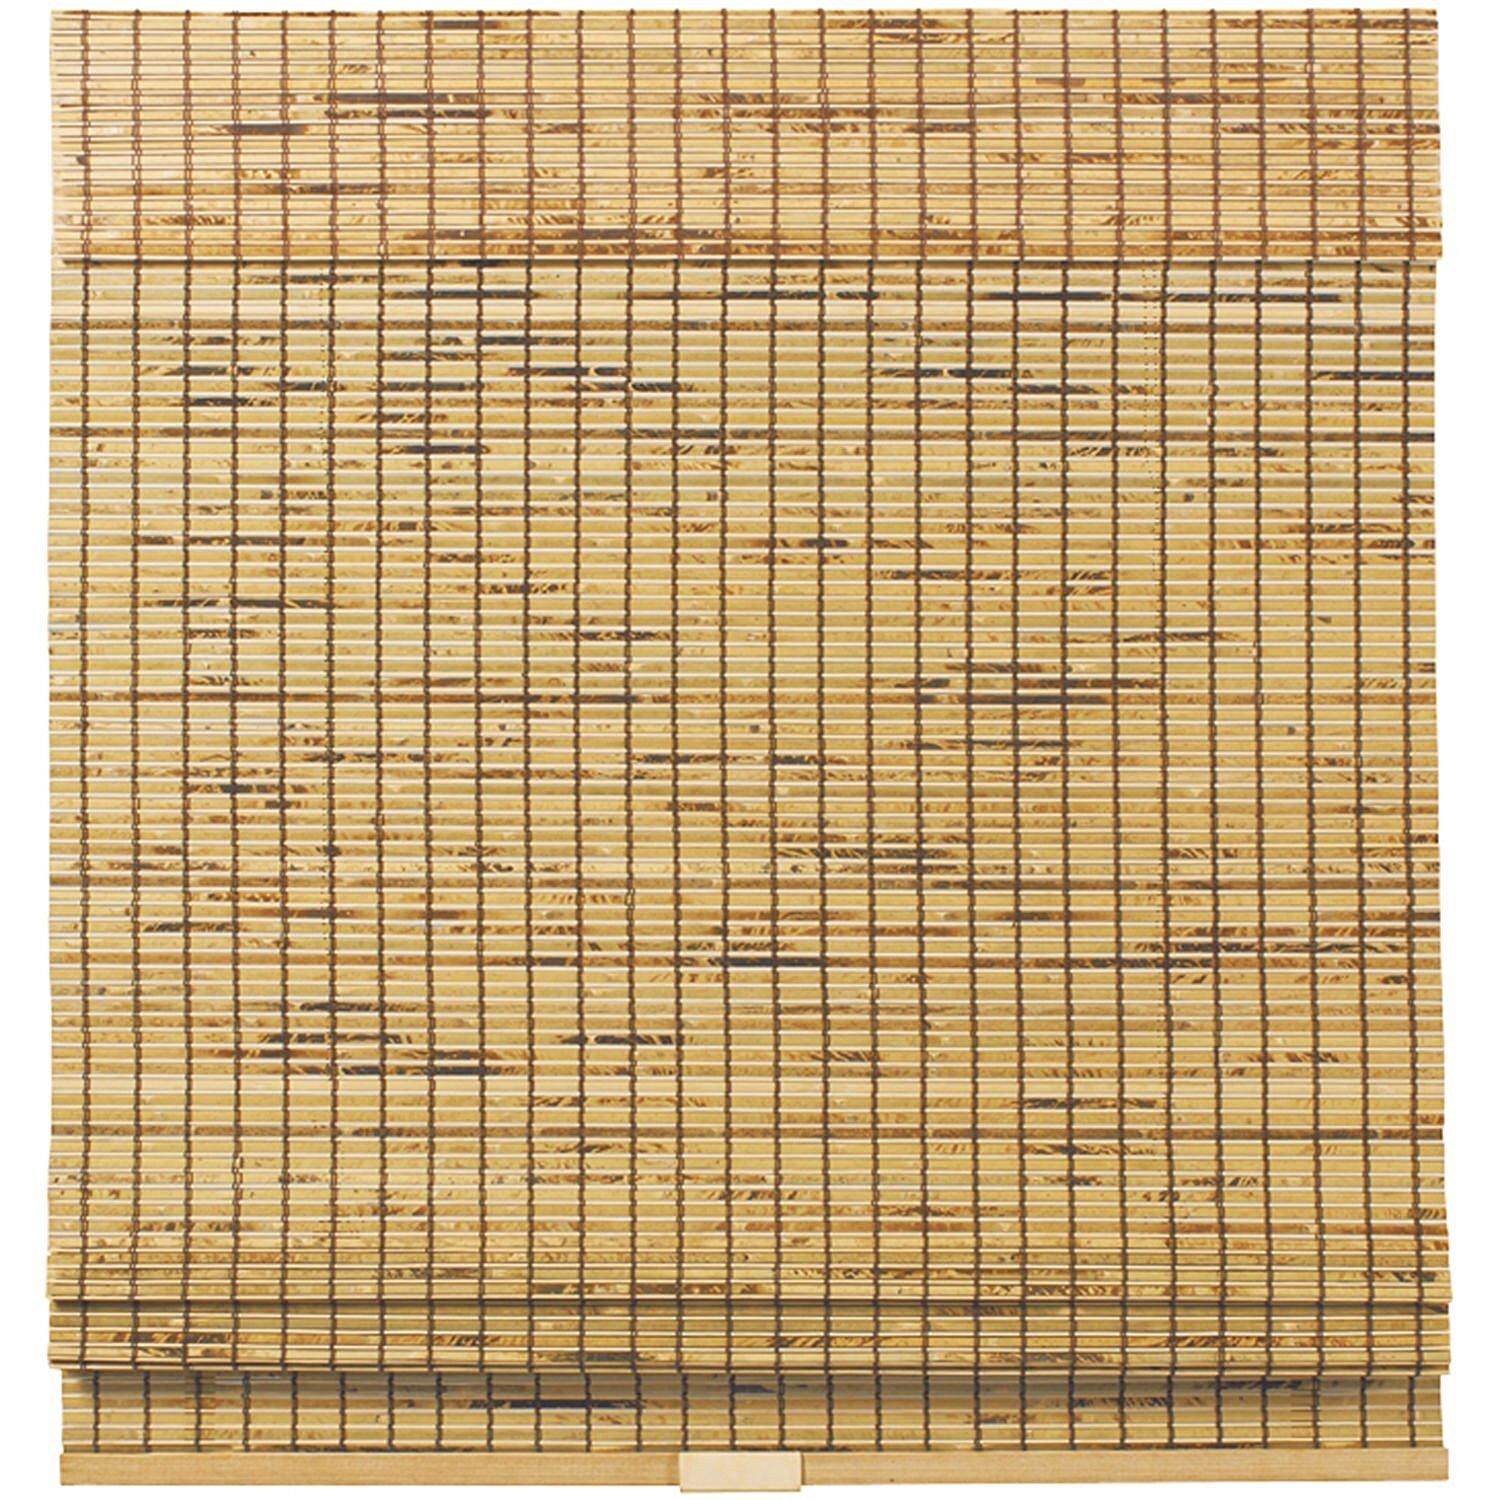 Cordless Woven Wood Bamboo Roman Shade- 2 Colors - Free Ship